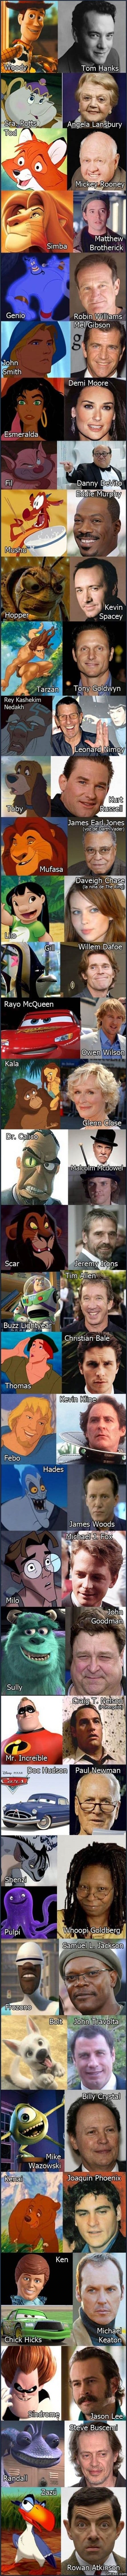 LOL - Disney characters and their real faces